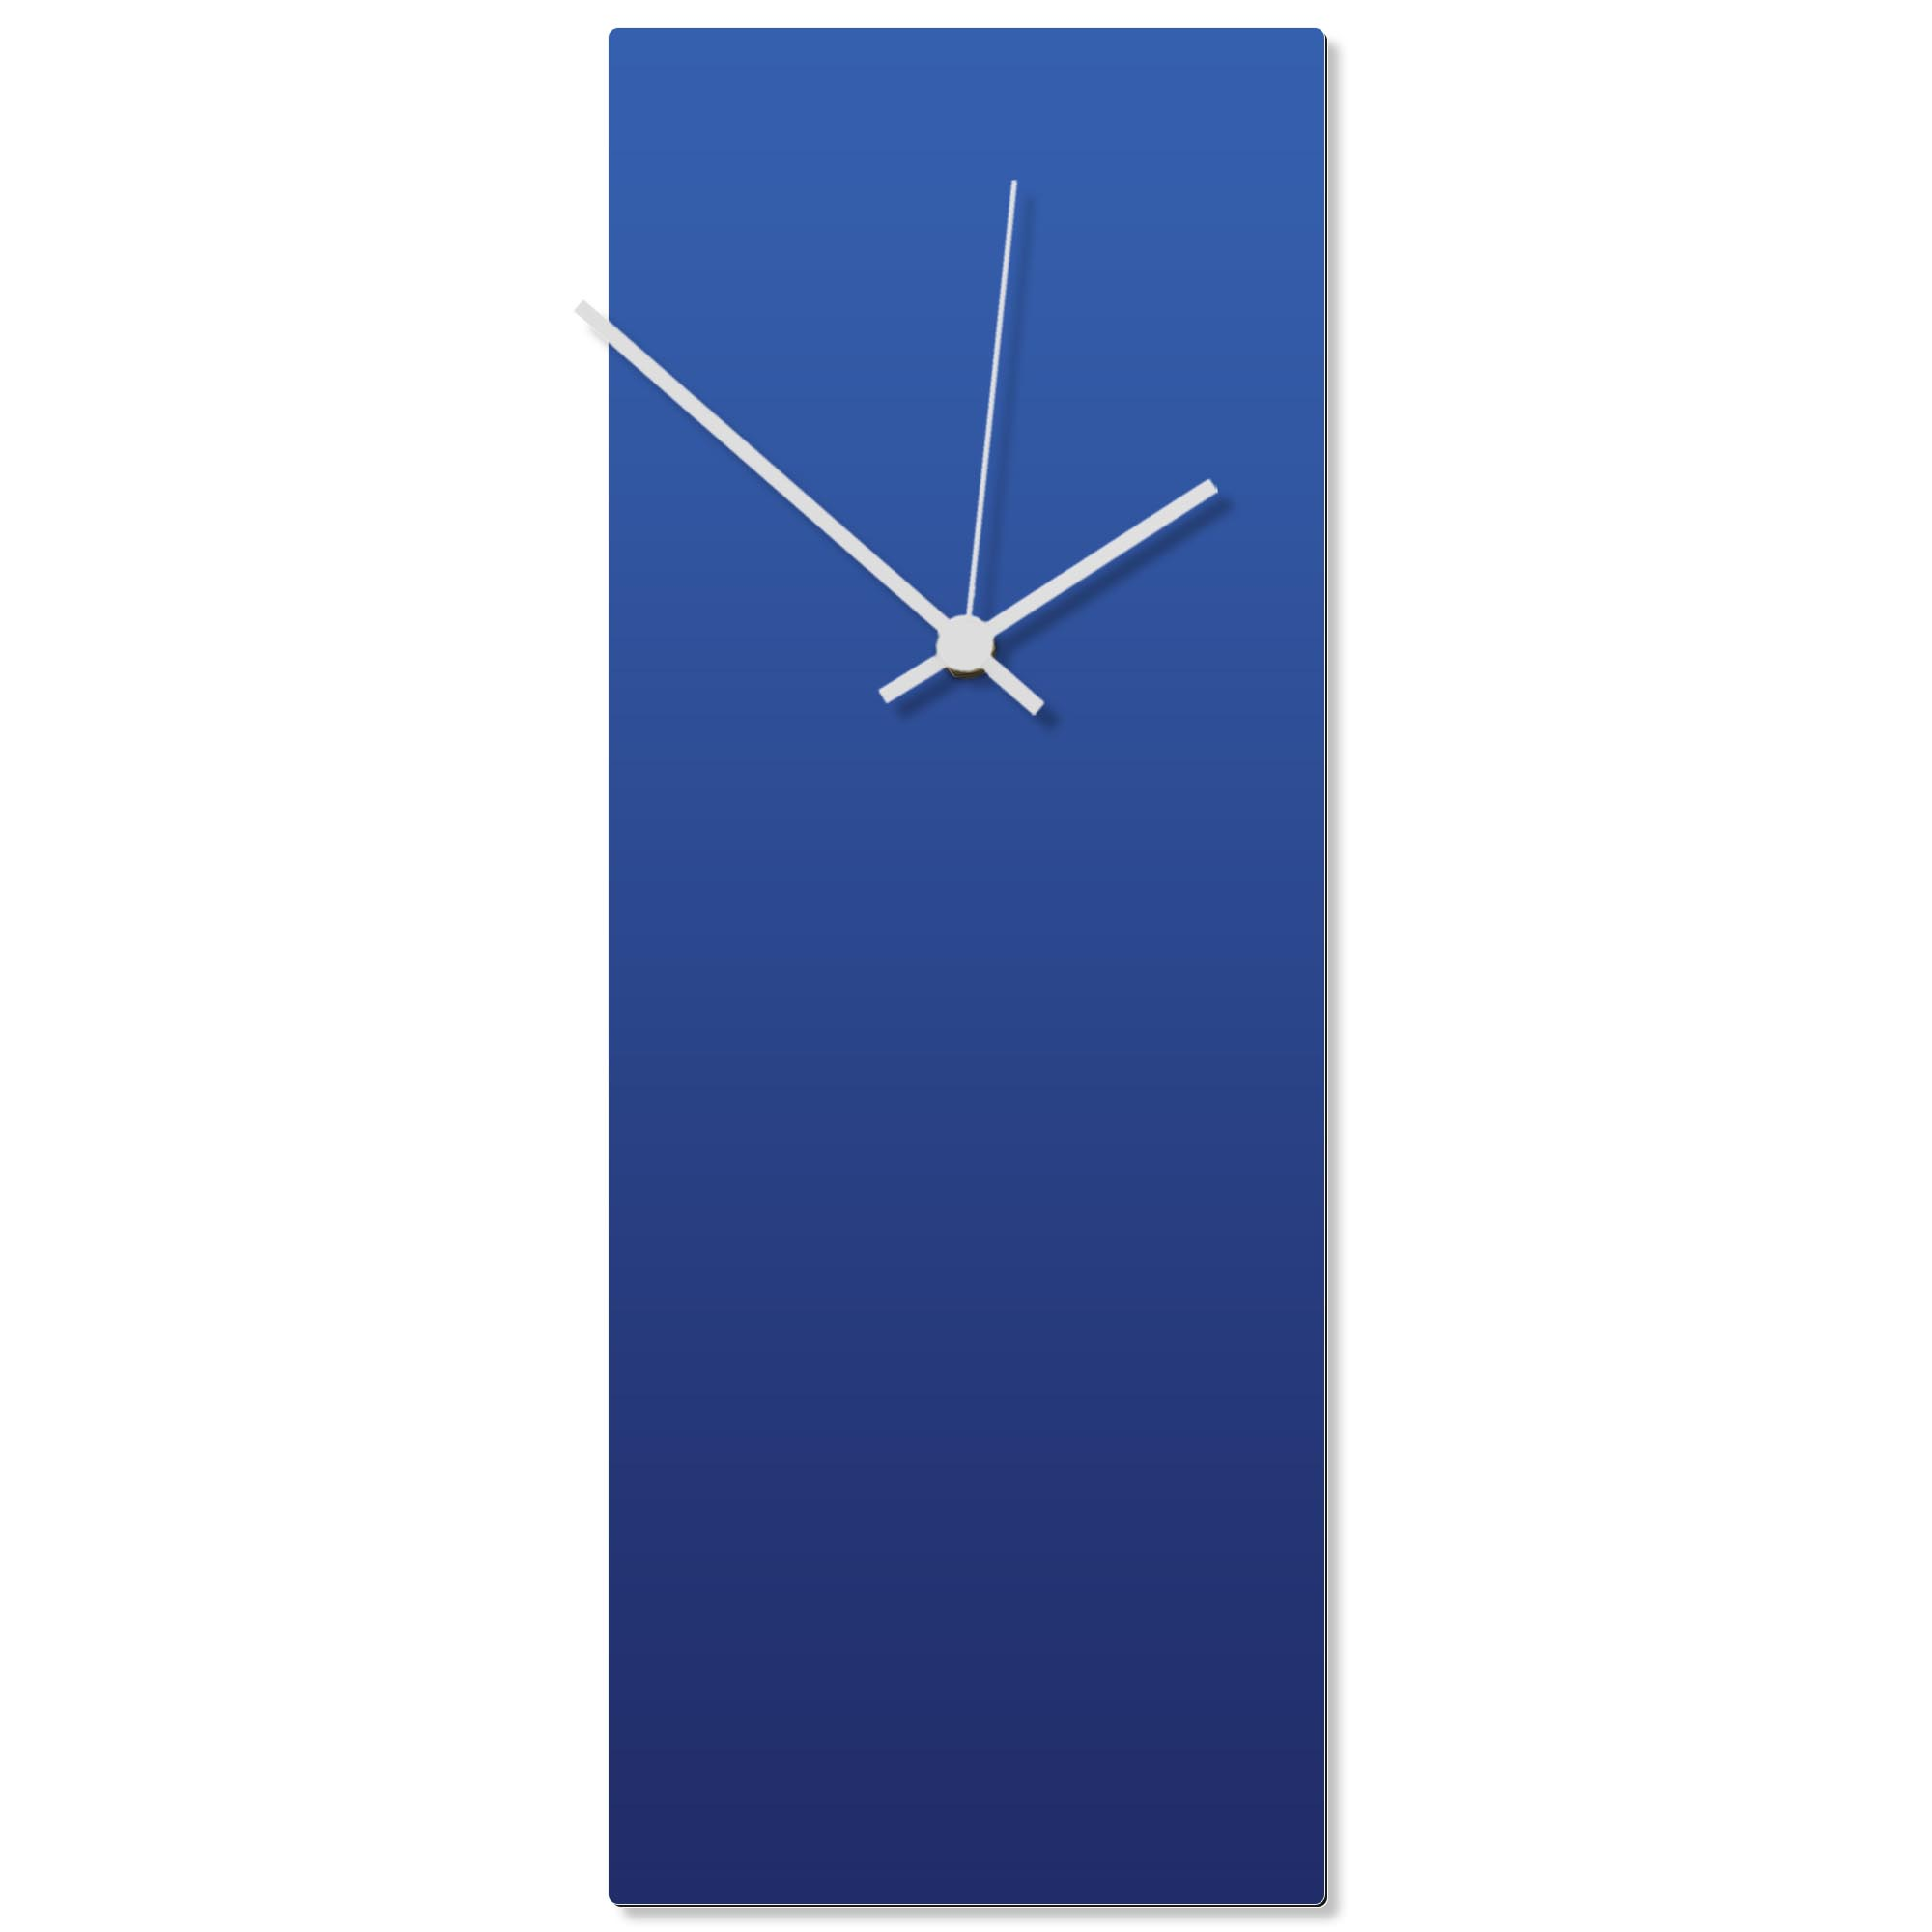 Blueout White Clock Large 8.25x22in. Aluminum Polymetal